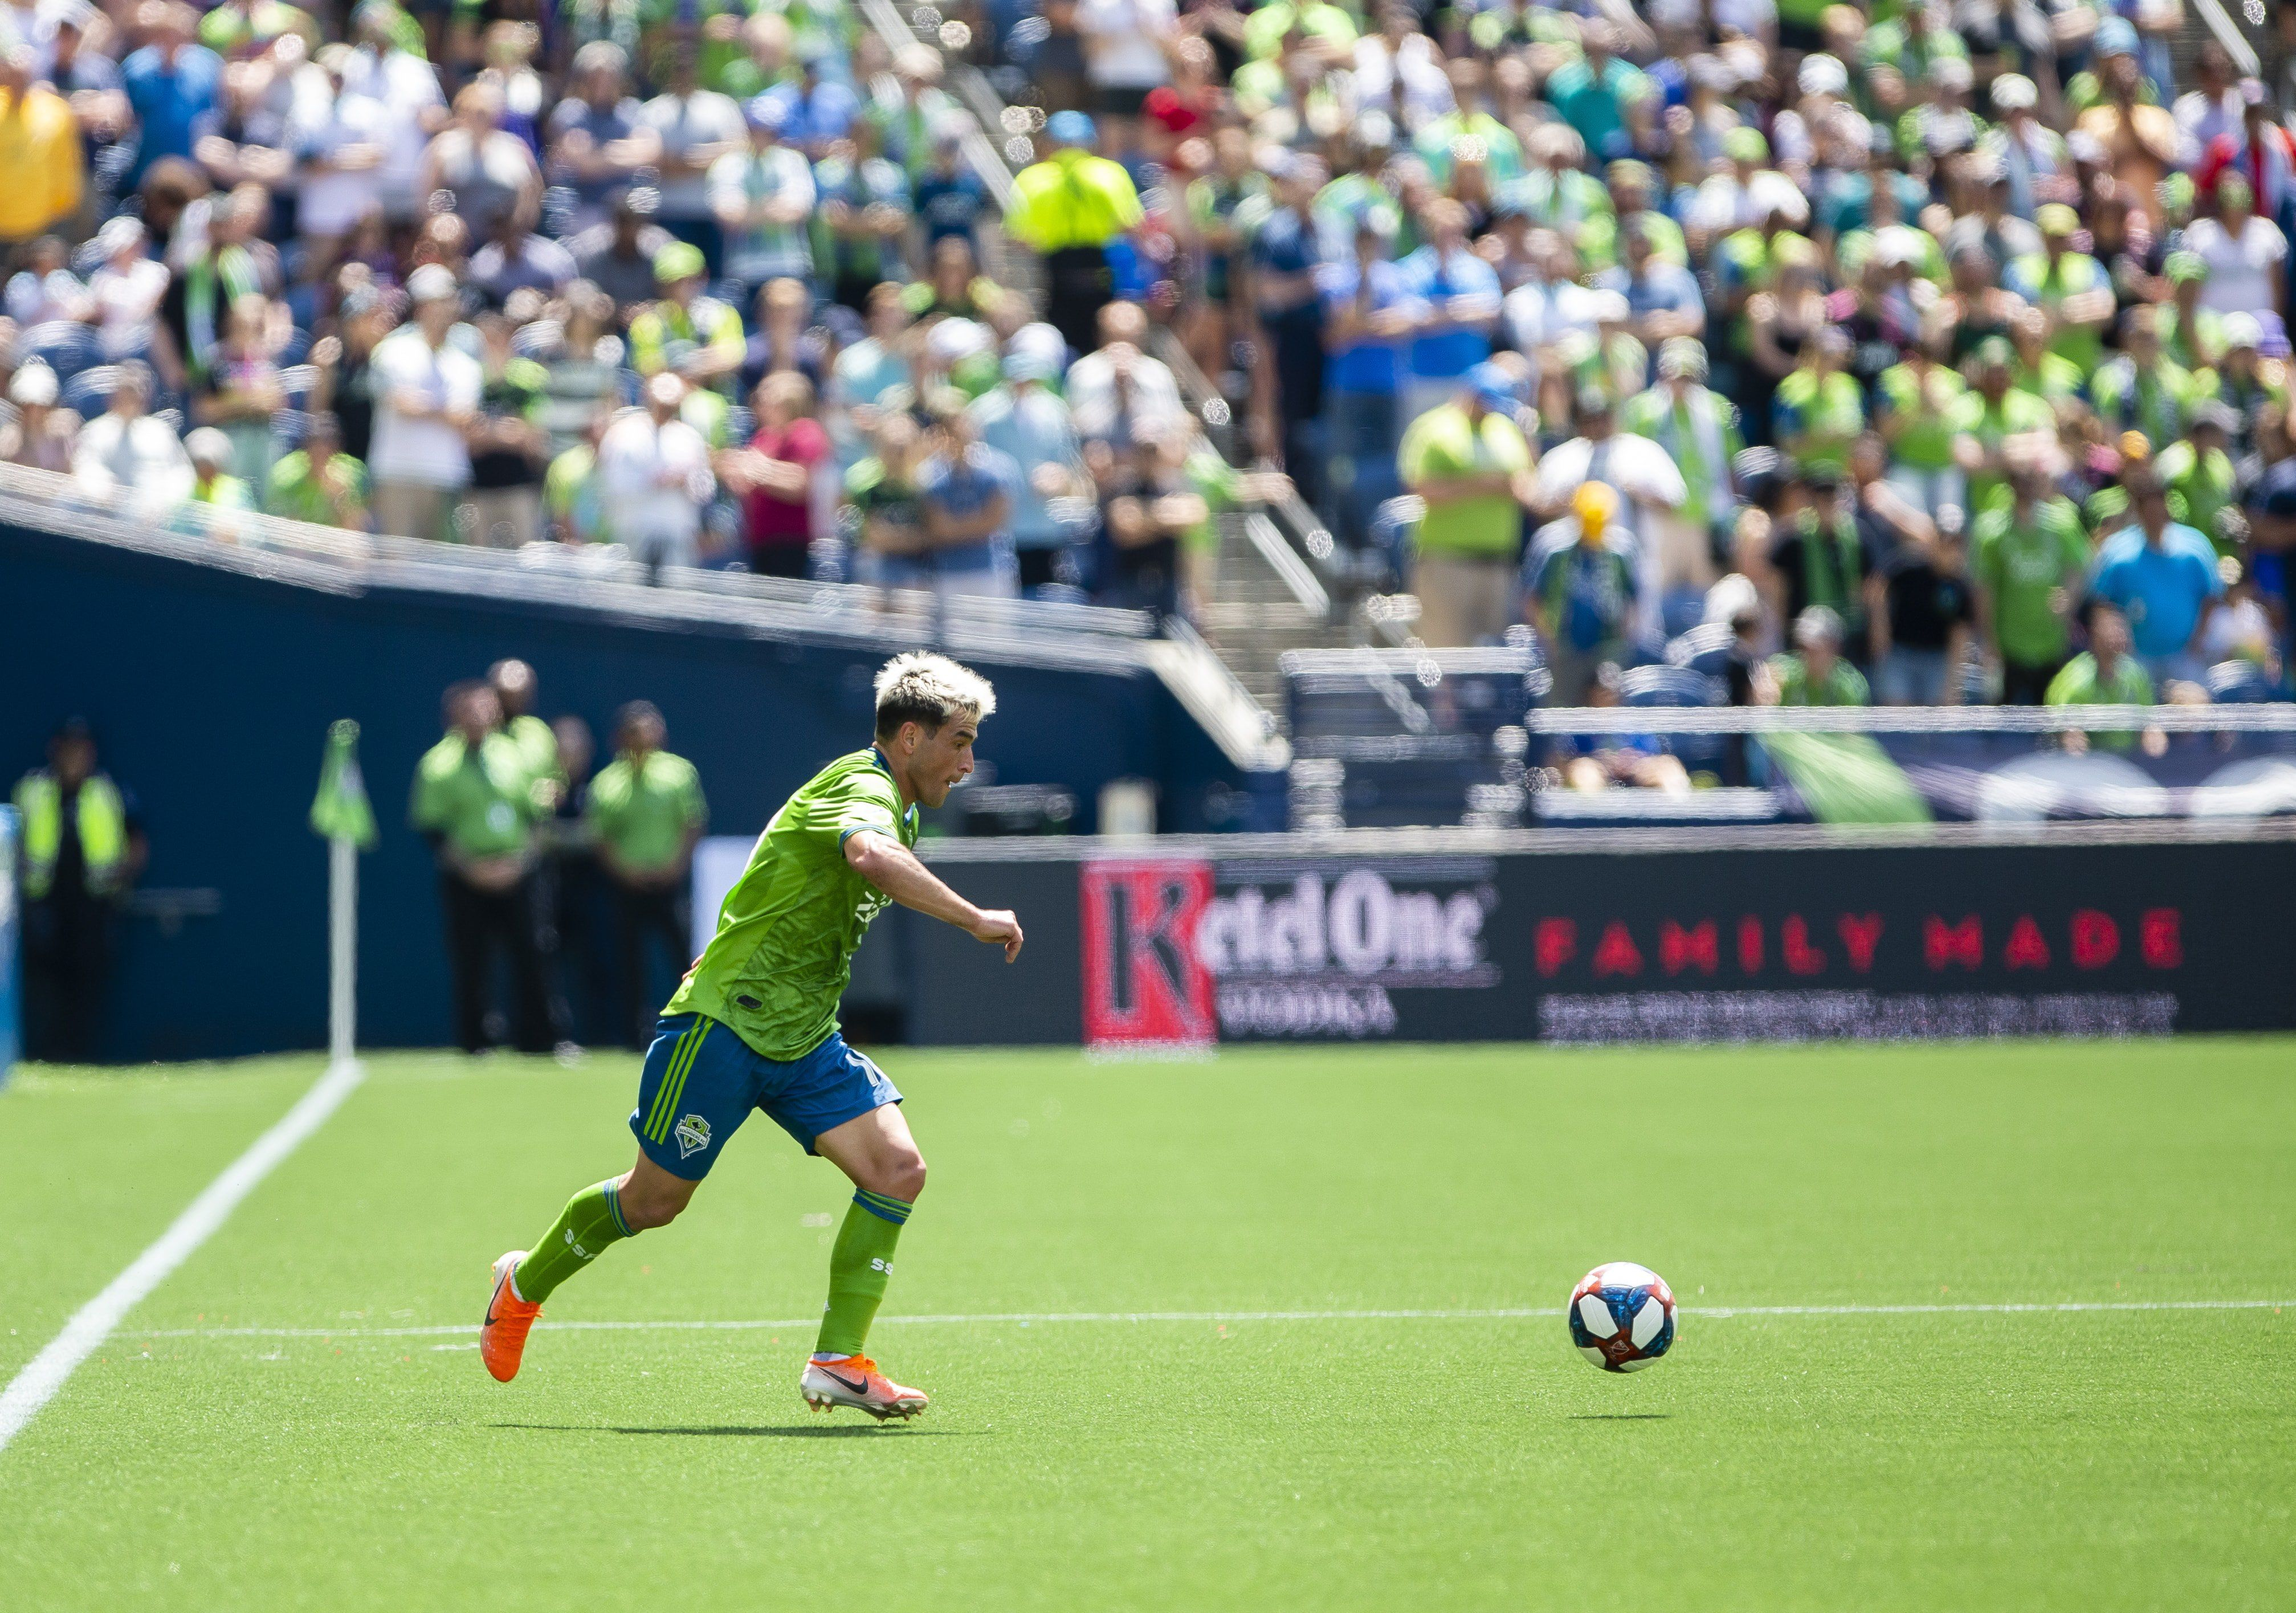 Portland Timbers vs Seattle Sounders Result, Scores